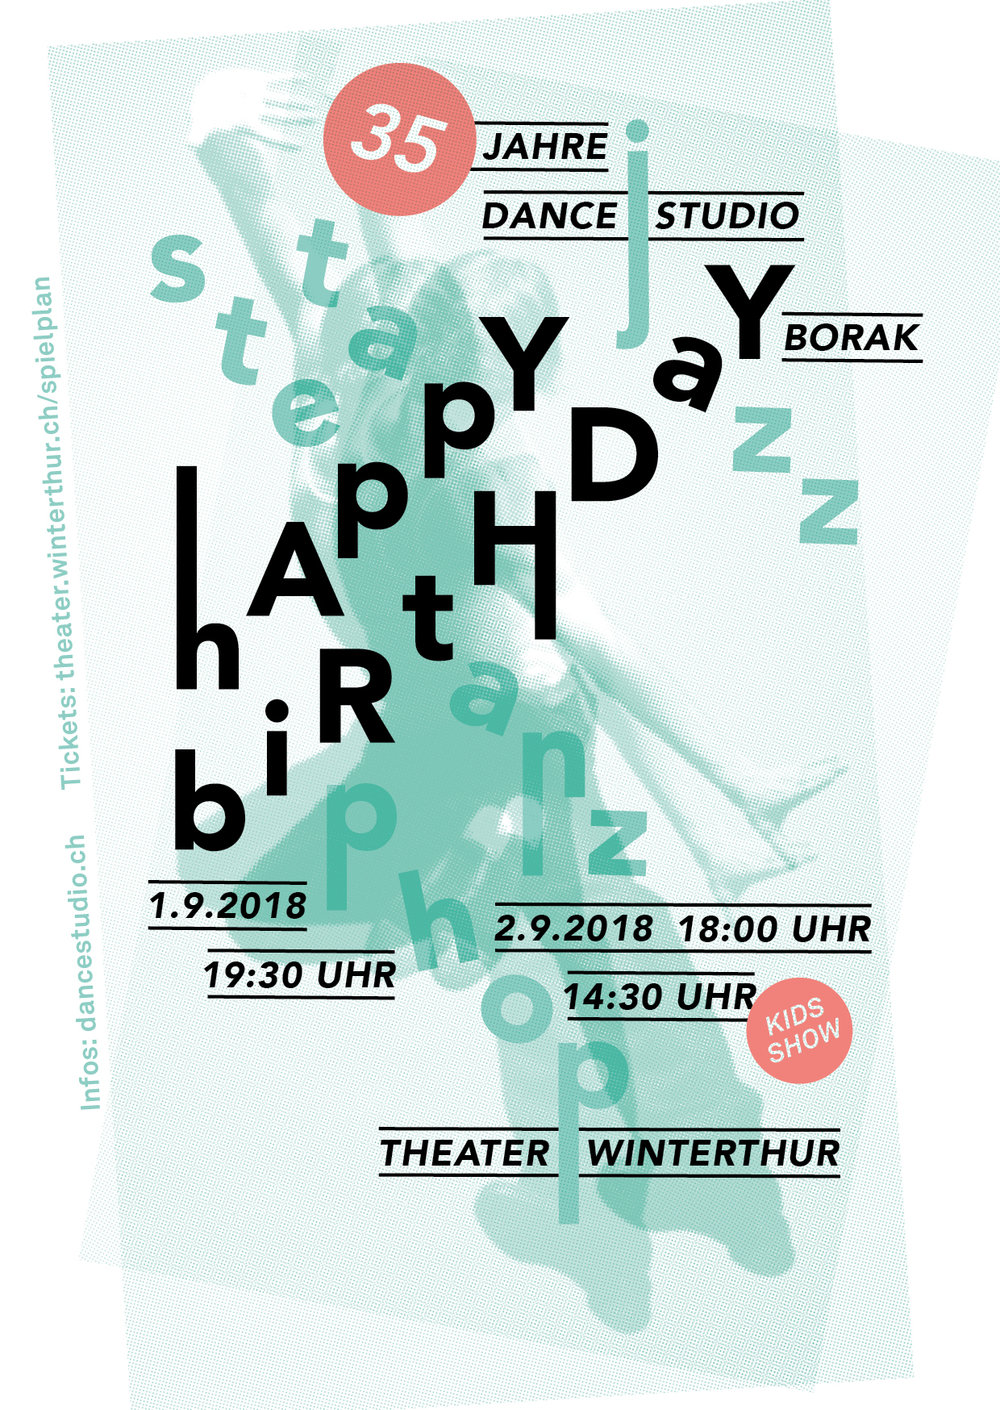 Dancestudio_Flyer_A6_neu.jpg